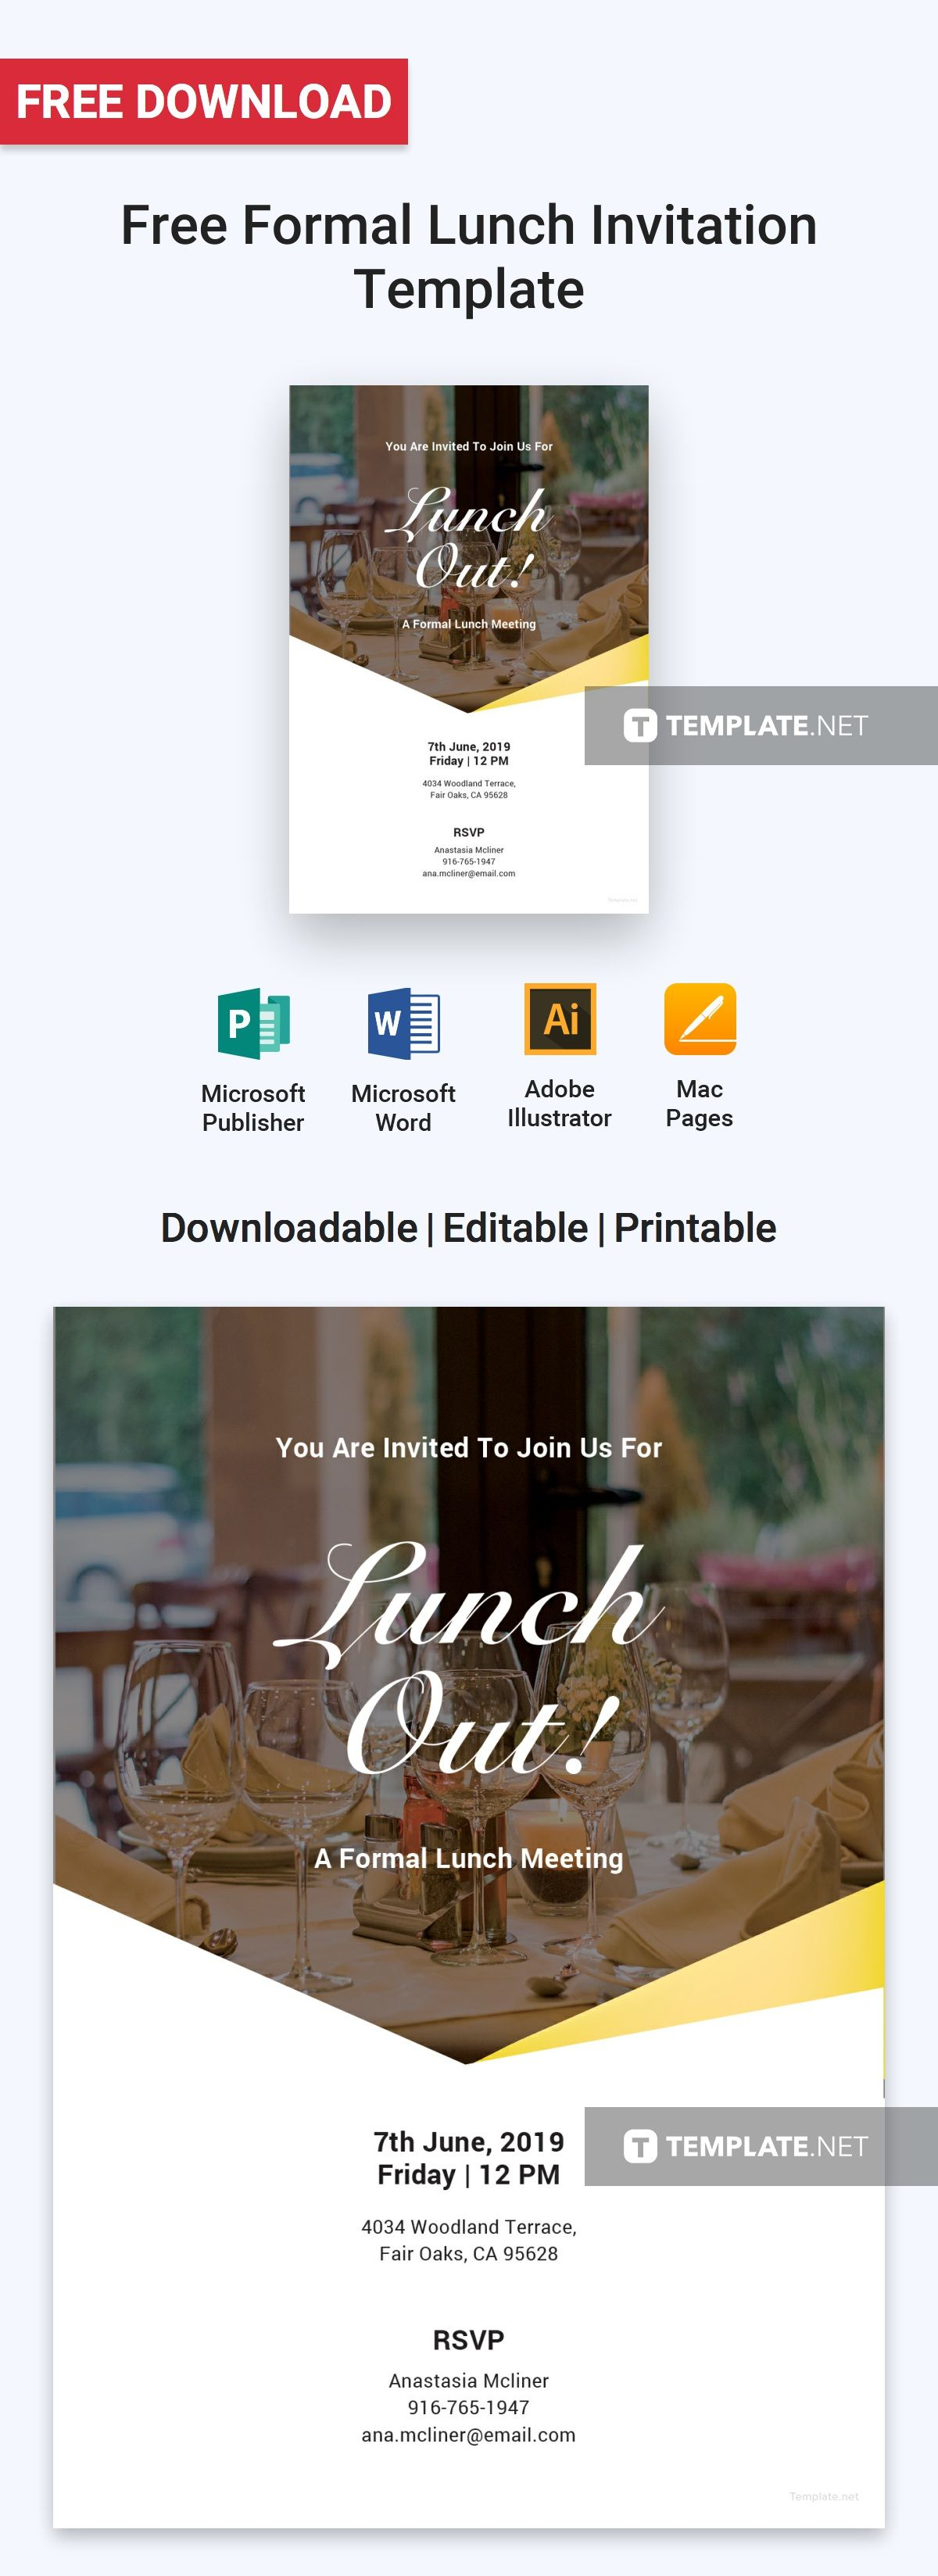 FREE Formal Lunch Invitation Template - Word (DOC)  PSD